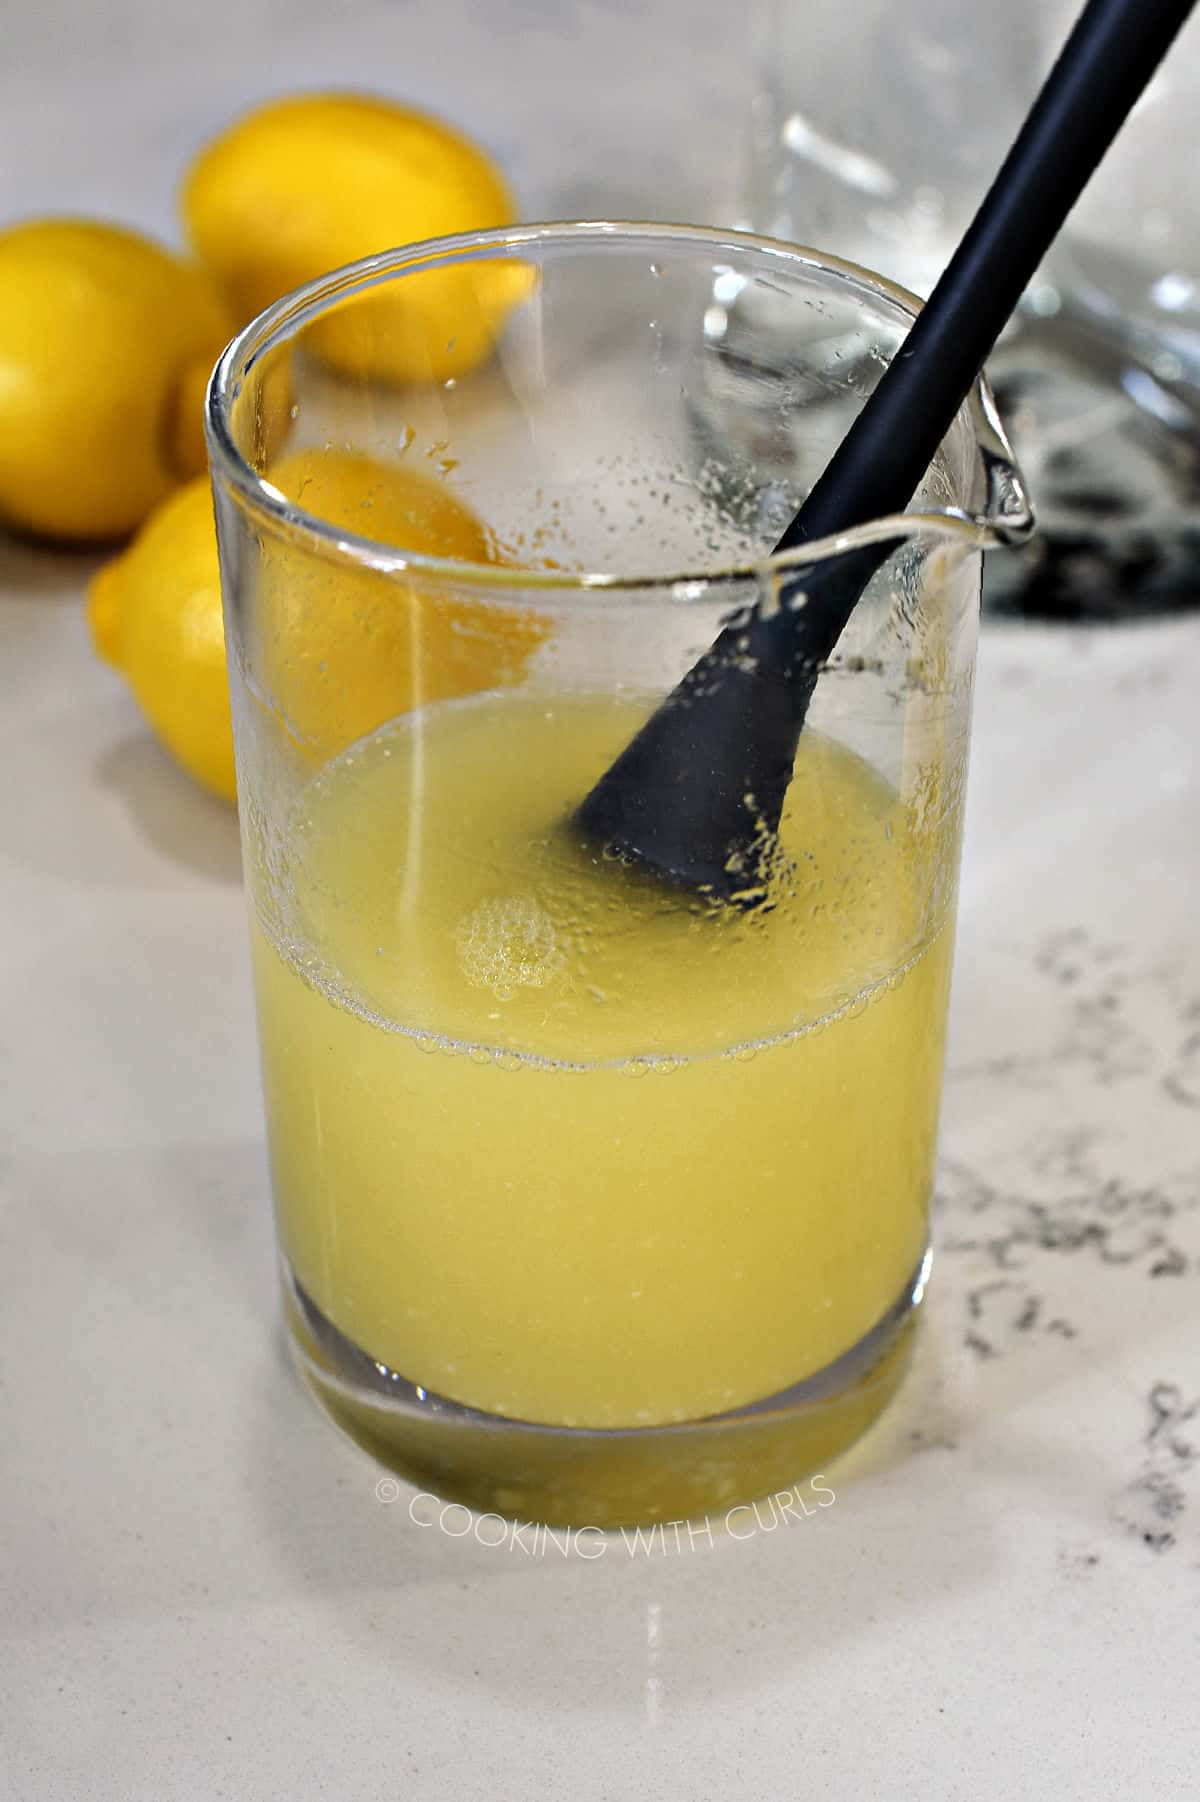 Sugar dissolved in lemon juice, stirred with a gray silicone mini spatula in a glass measuring cup.